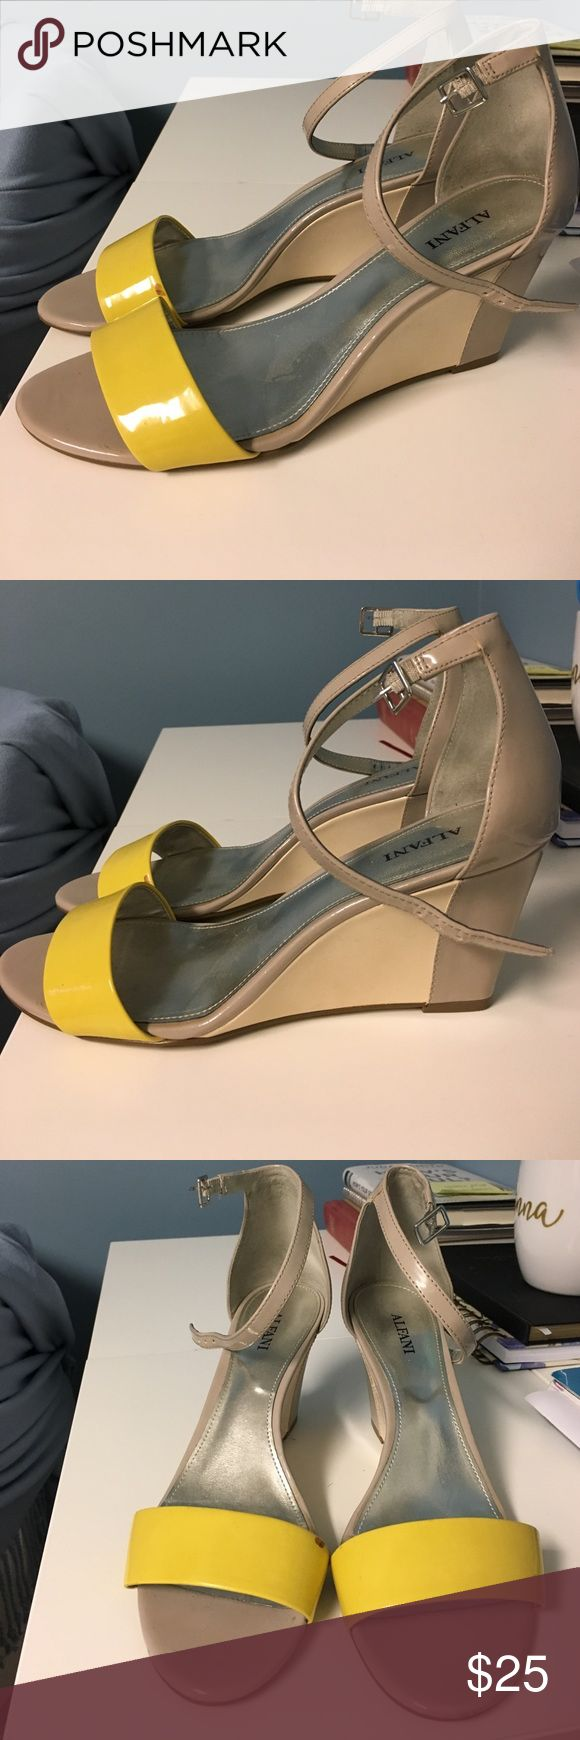 Wedge heels Wedge heels two toned heels with yellow strap. Worn a few times but still in great condition Alfani Shoes Wedges